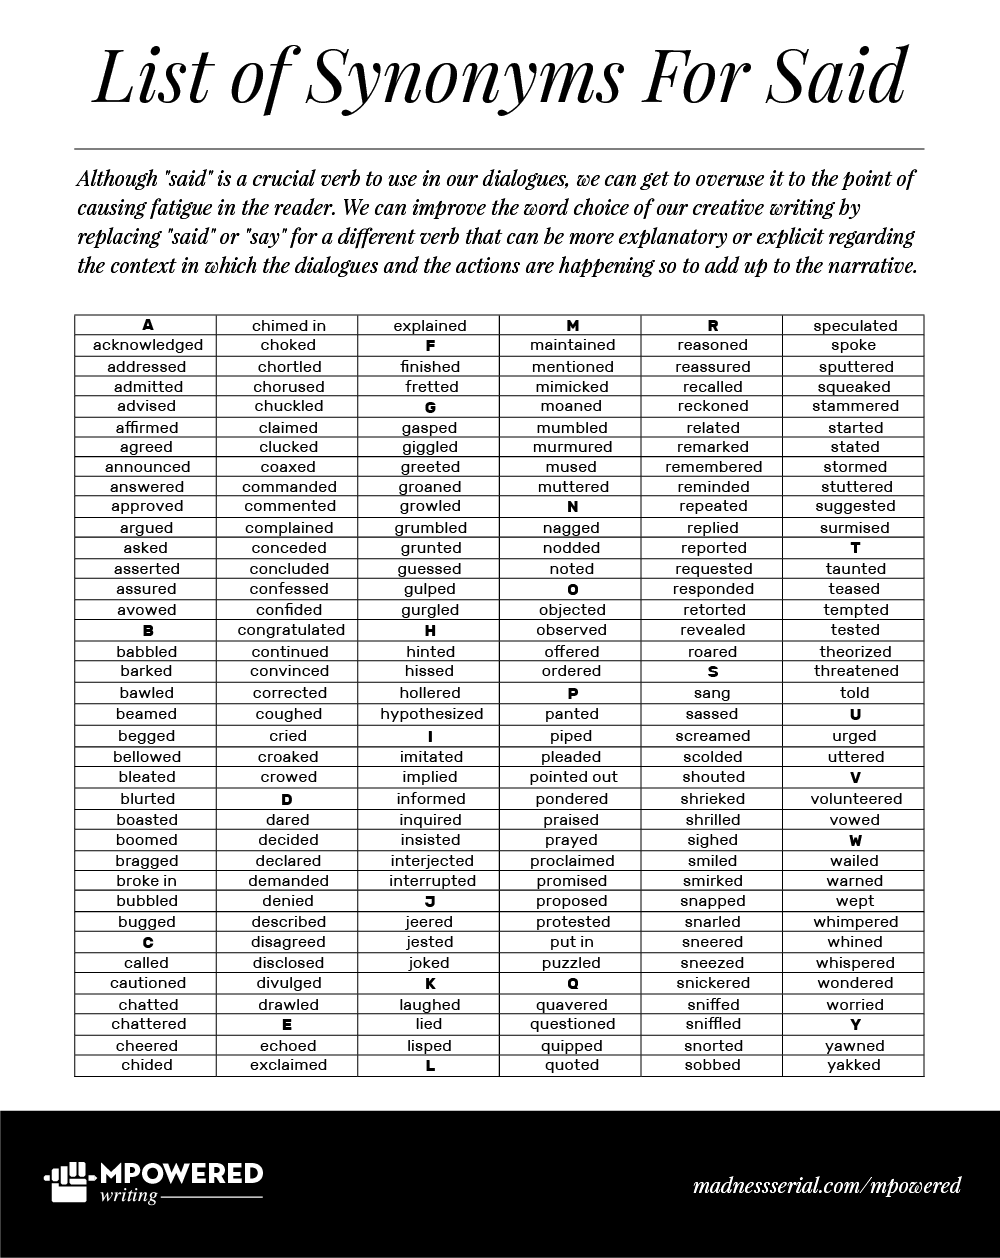 List-of-Synonyms-for-Said.png